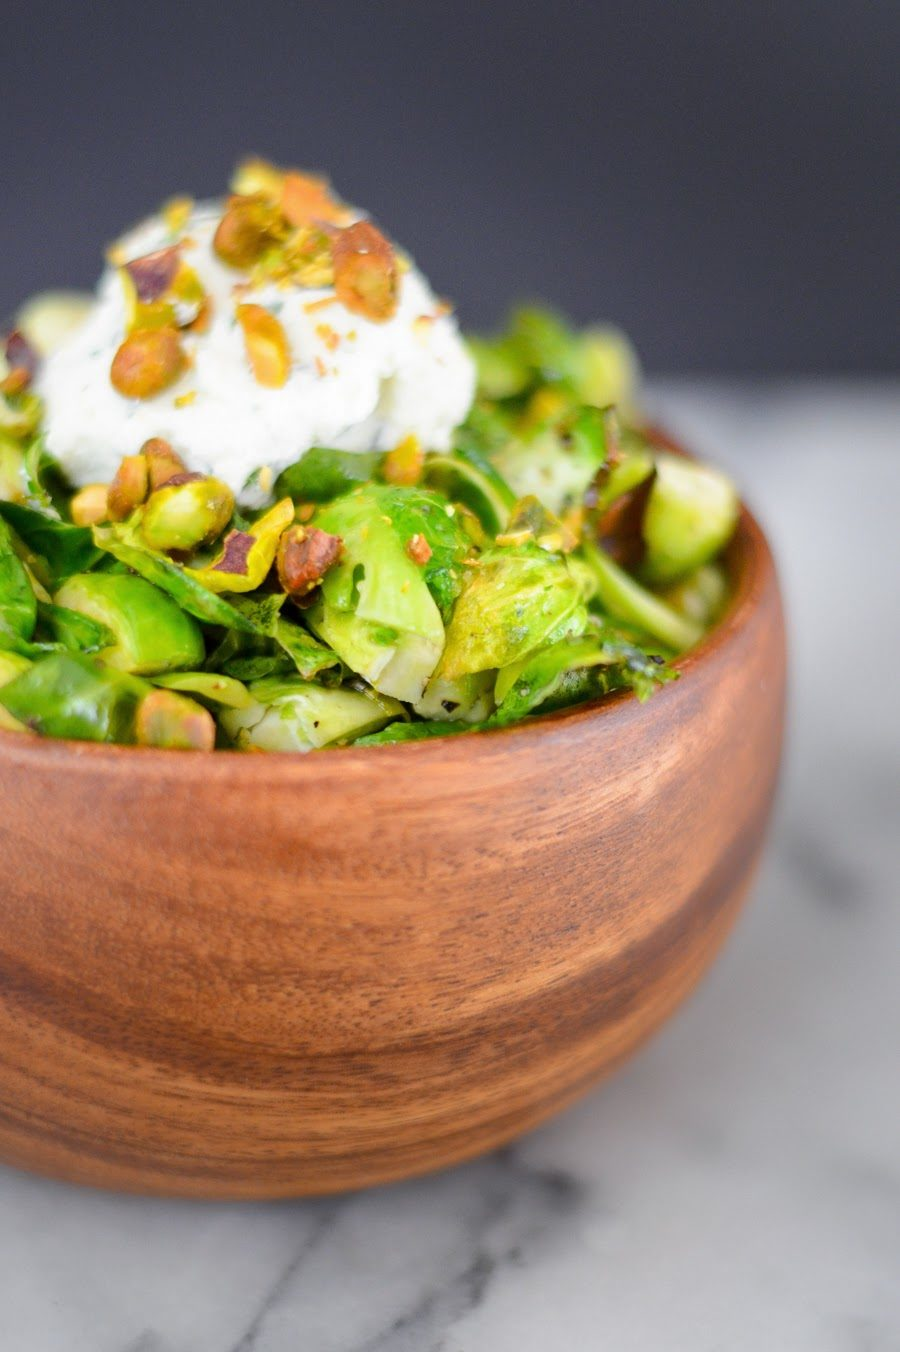 Perfectly Roasted Brussel Sprouts